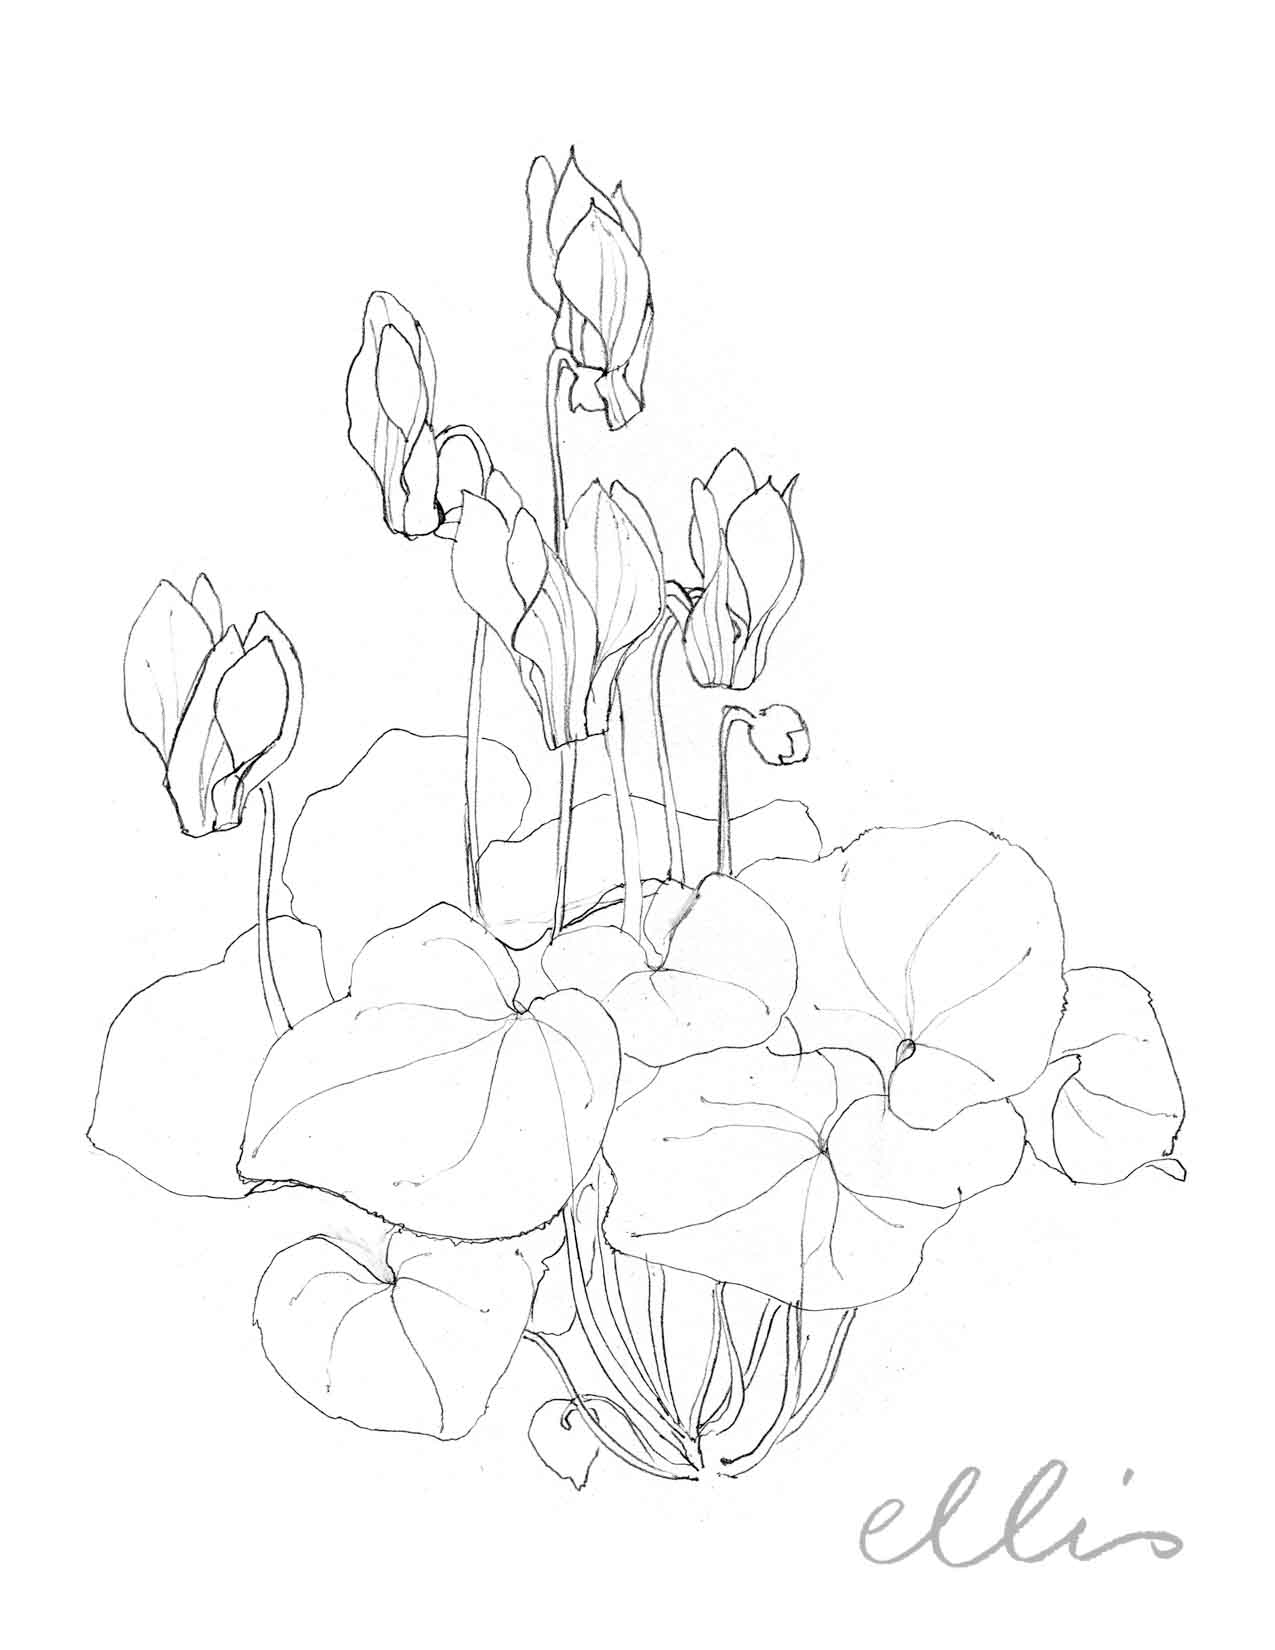 Erin Ellis_100 days project botanical drawings_2013-82.jpg